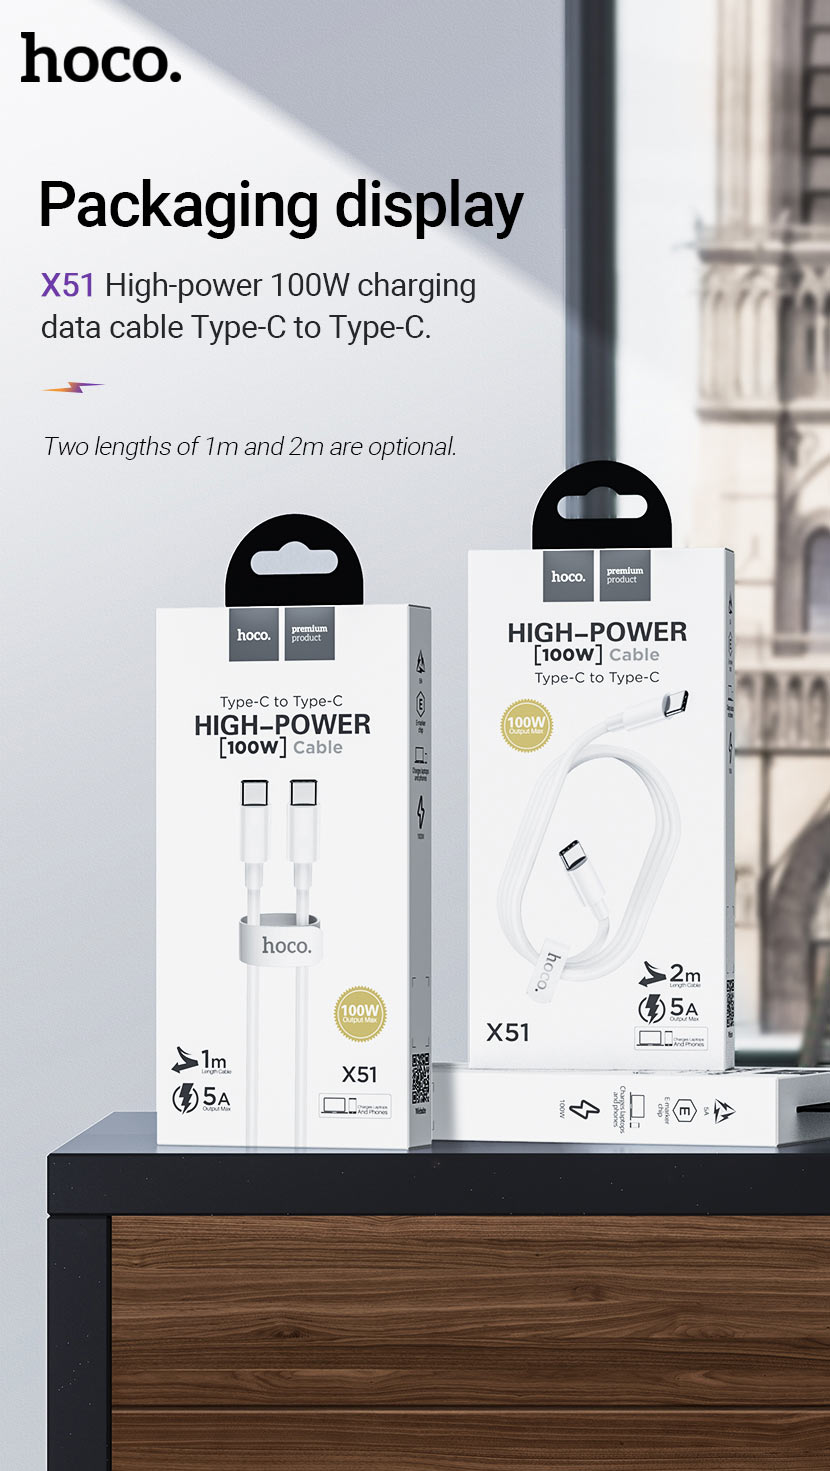 hoco news x51 high power 100w charging data cable package en